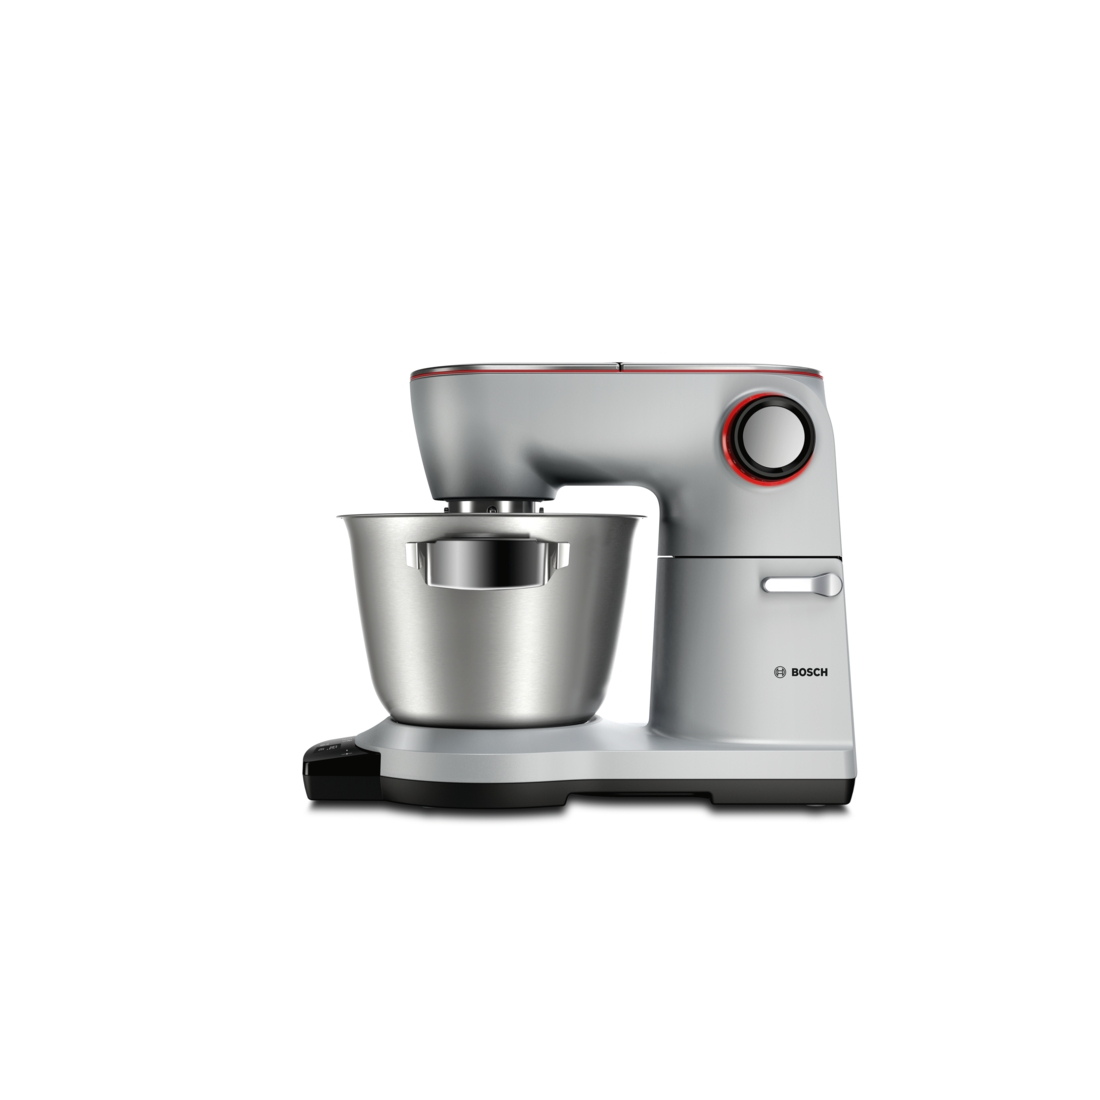 Bosch Bosch Optimum Food Processor Mum9ax5s00 Platinum Silver